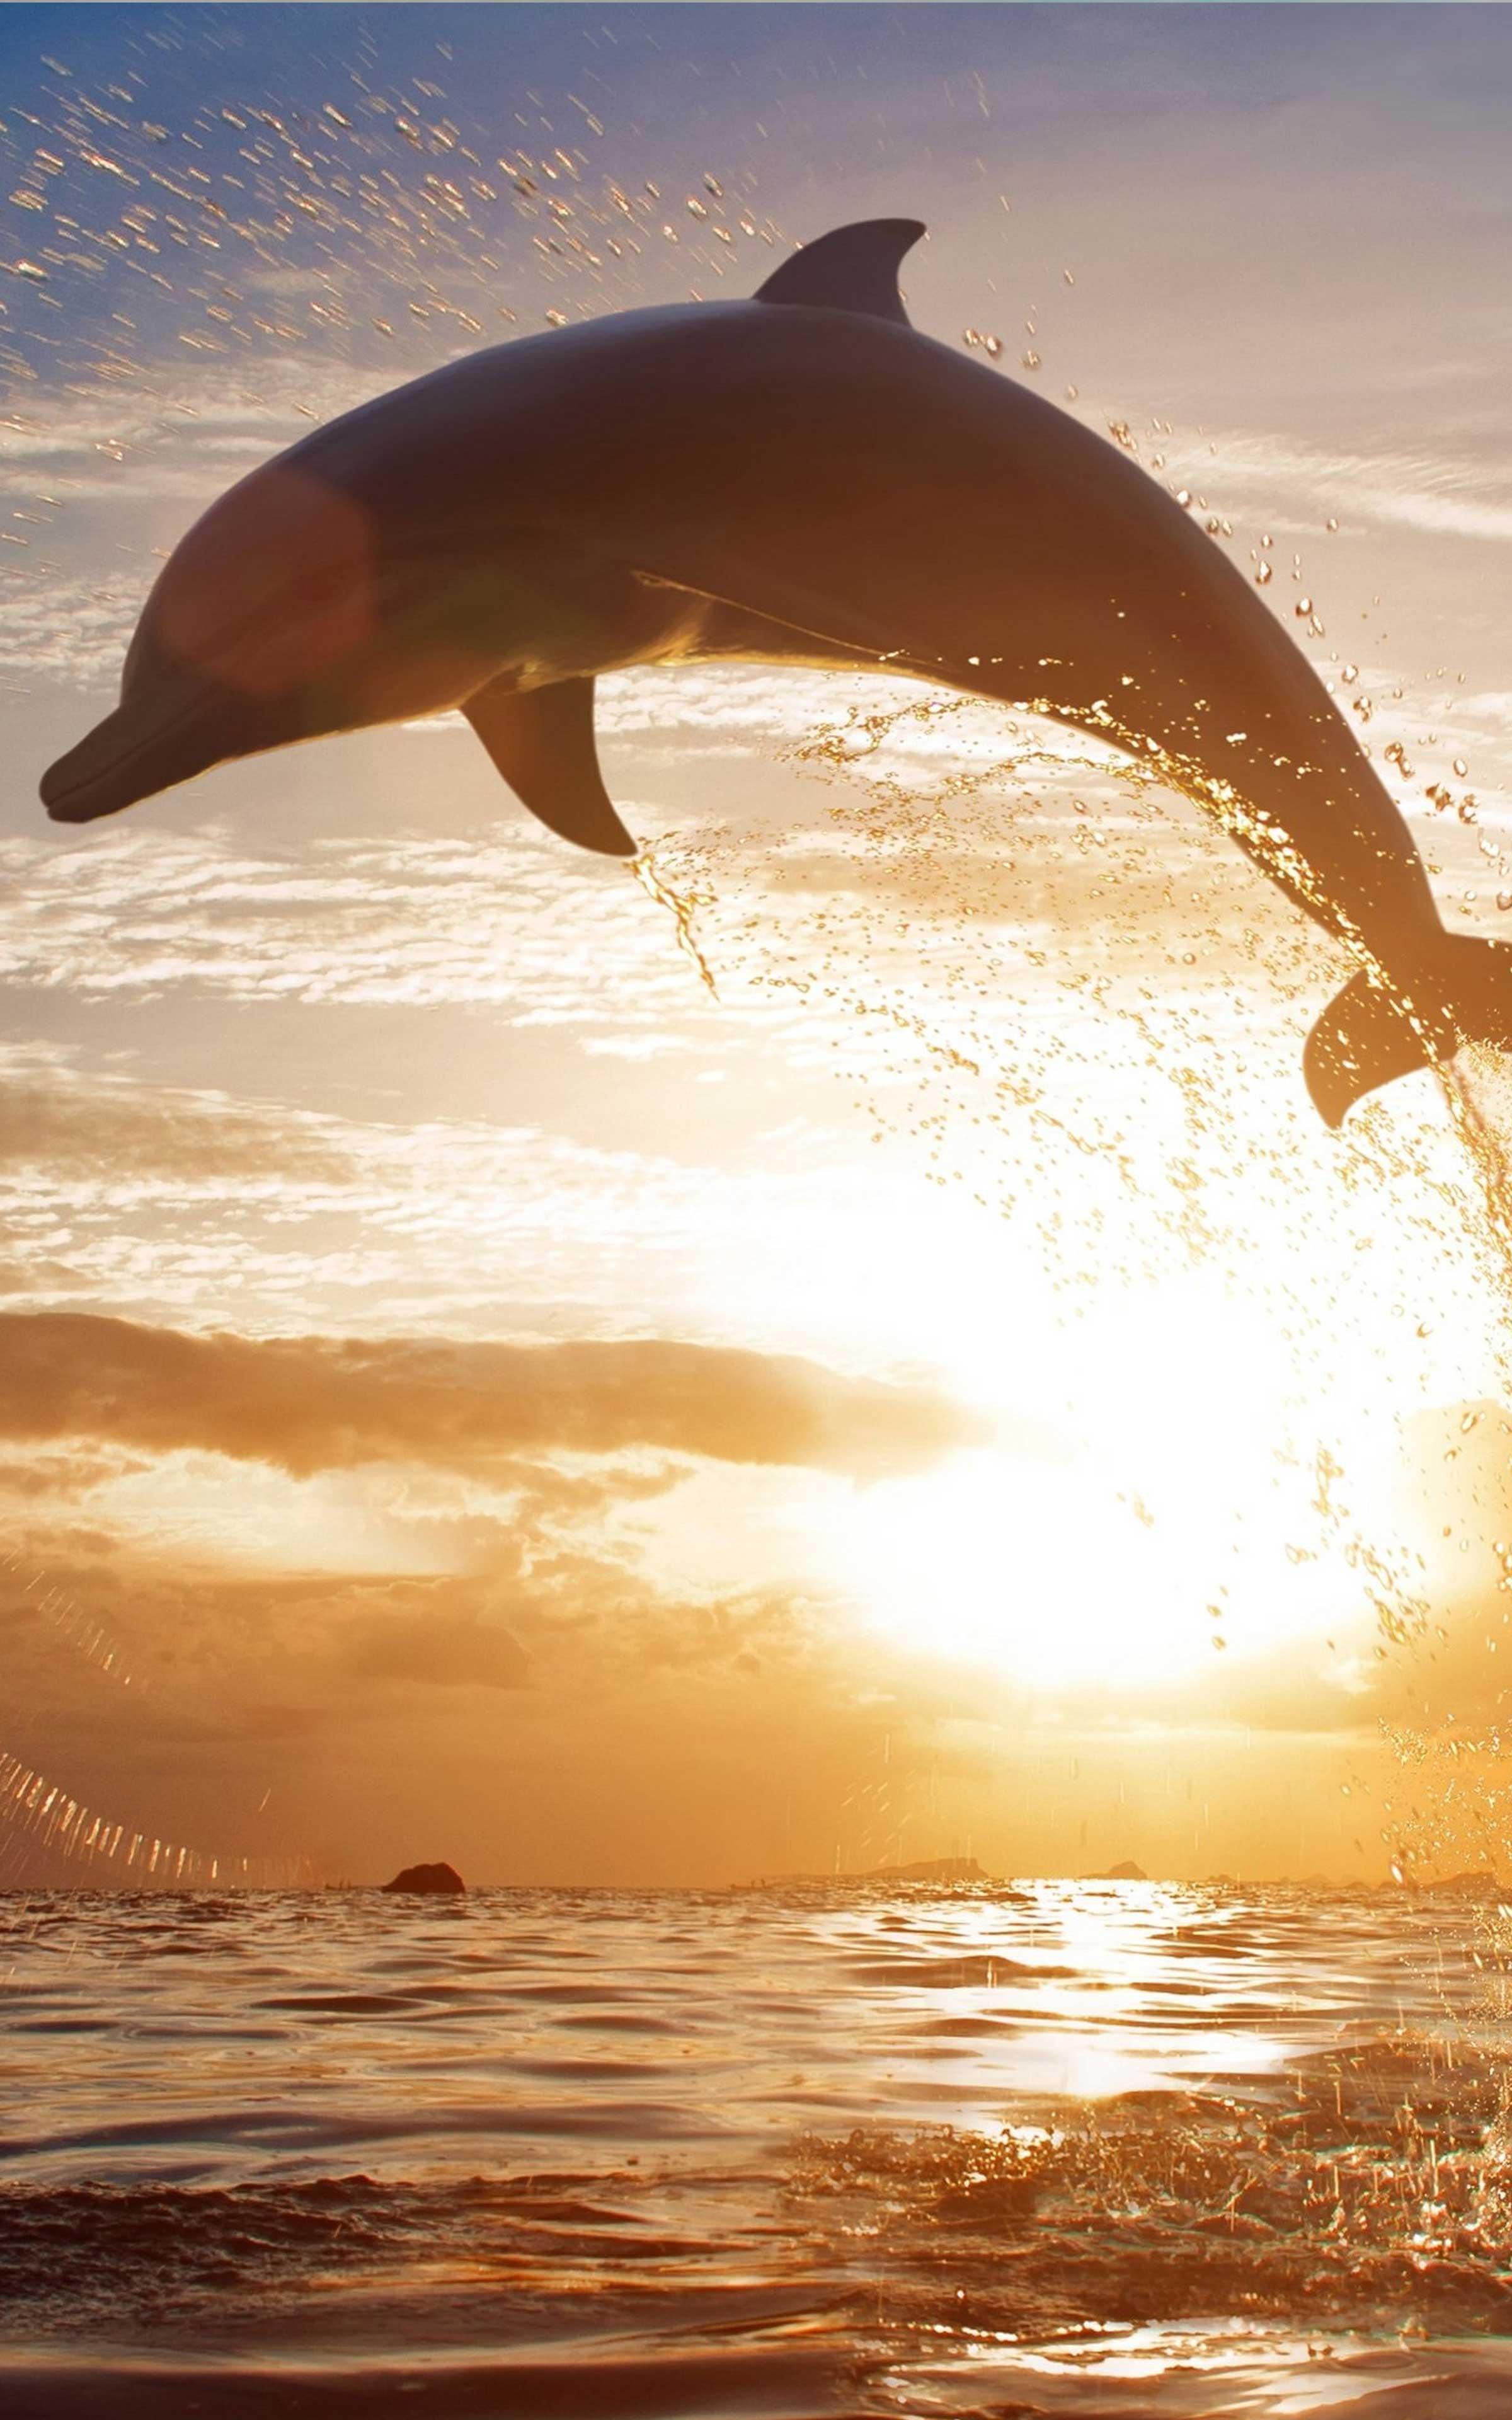 Dolphin Wallpaper - Best Cool Dolphin Wallpapers para Android - APK